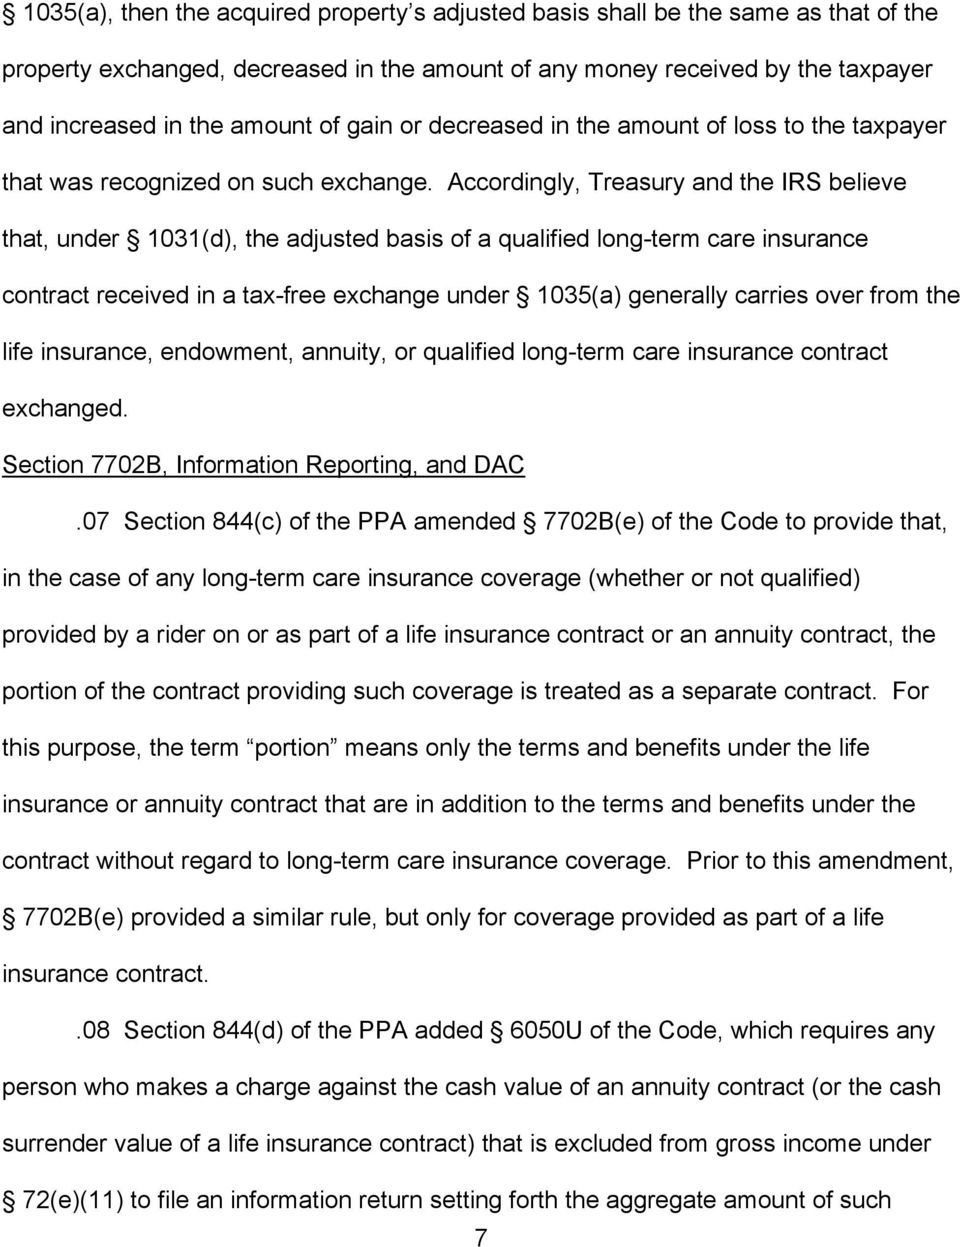 Accordingly, Treasury and the IRS believe that, under 1031(d), the adjusted basis of a qualified long-term care insurance contract received in a tax-free exchange under 1035(a) generally carries over